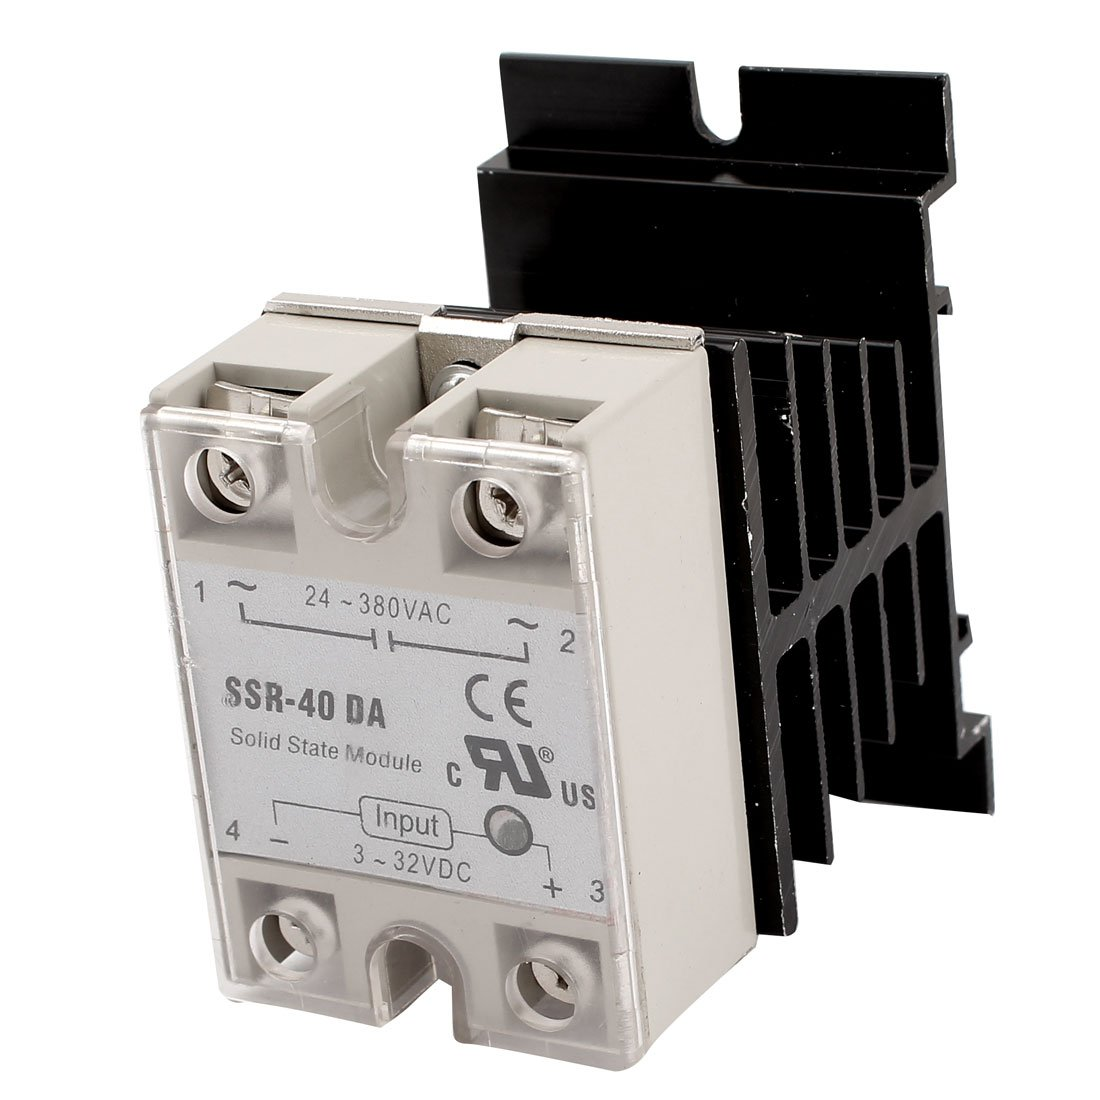 DC 3-32V Input AC 24-380V Output 40A SSR Solid State Relay w Heat Sink high quality temprature control solid state relay ssr 40a 3 32v dc 24 380v ac with heat sink